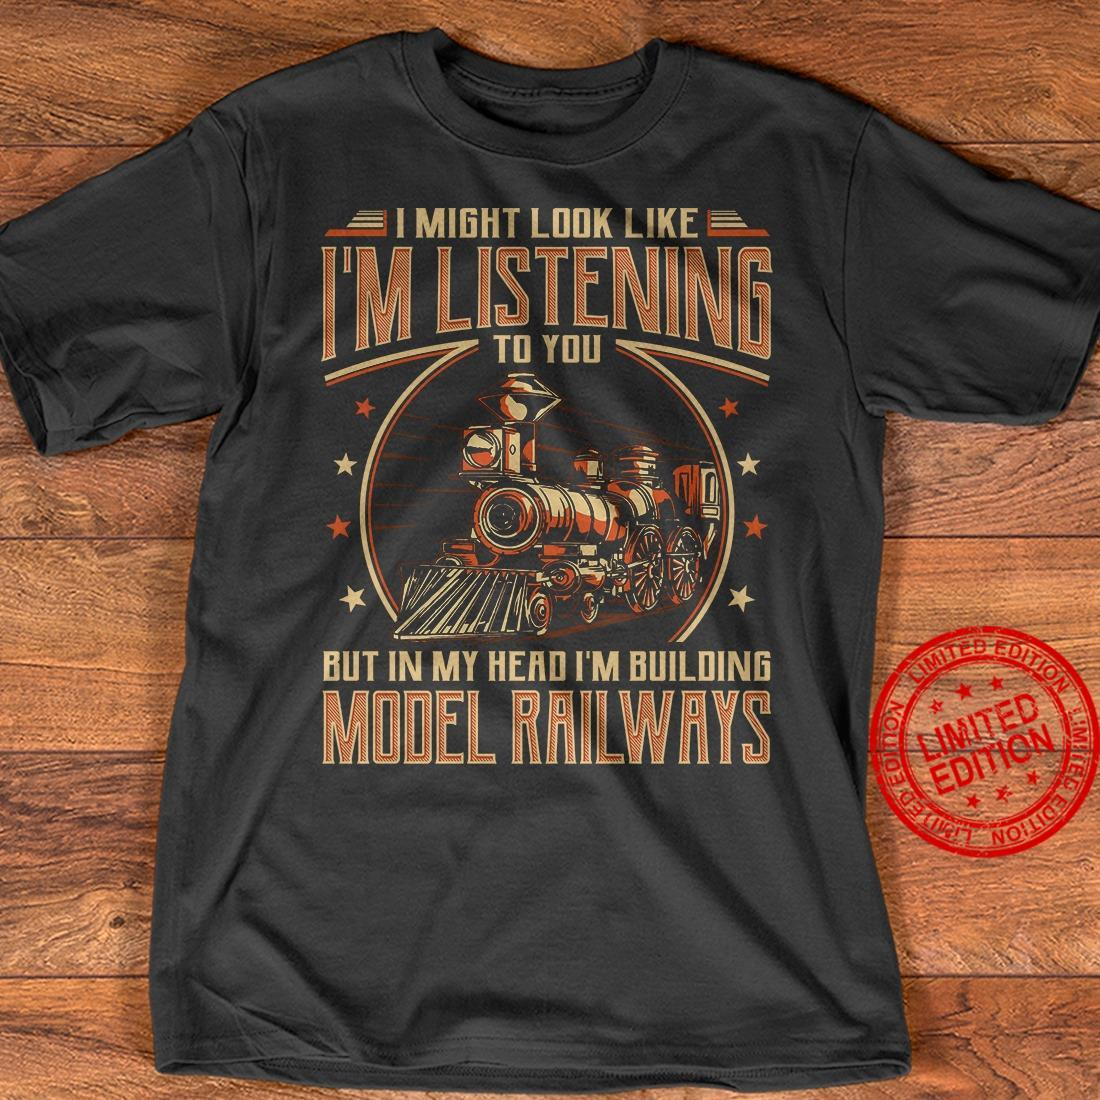 I Might Look Like I'm Listening To You But In My Head I'm Building Model Railways Shirt